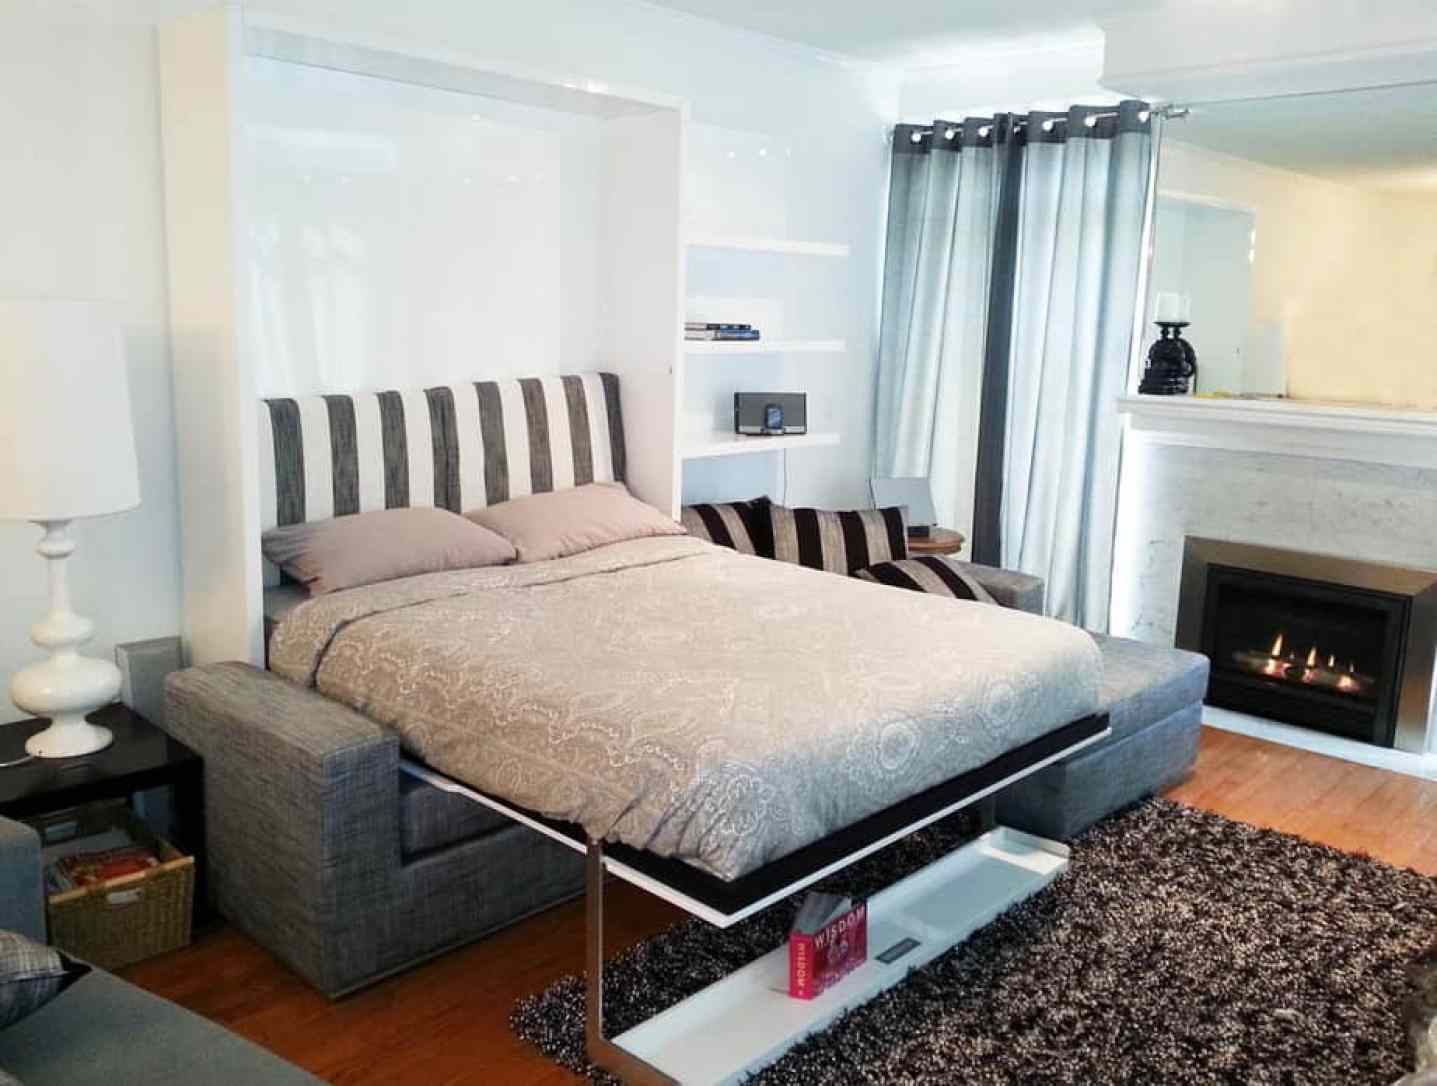 Quiet_Lunch_Magazine_MurphySofa-sectional-wall-bed-opened-sold-by-expand-furniture